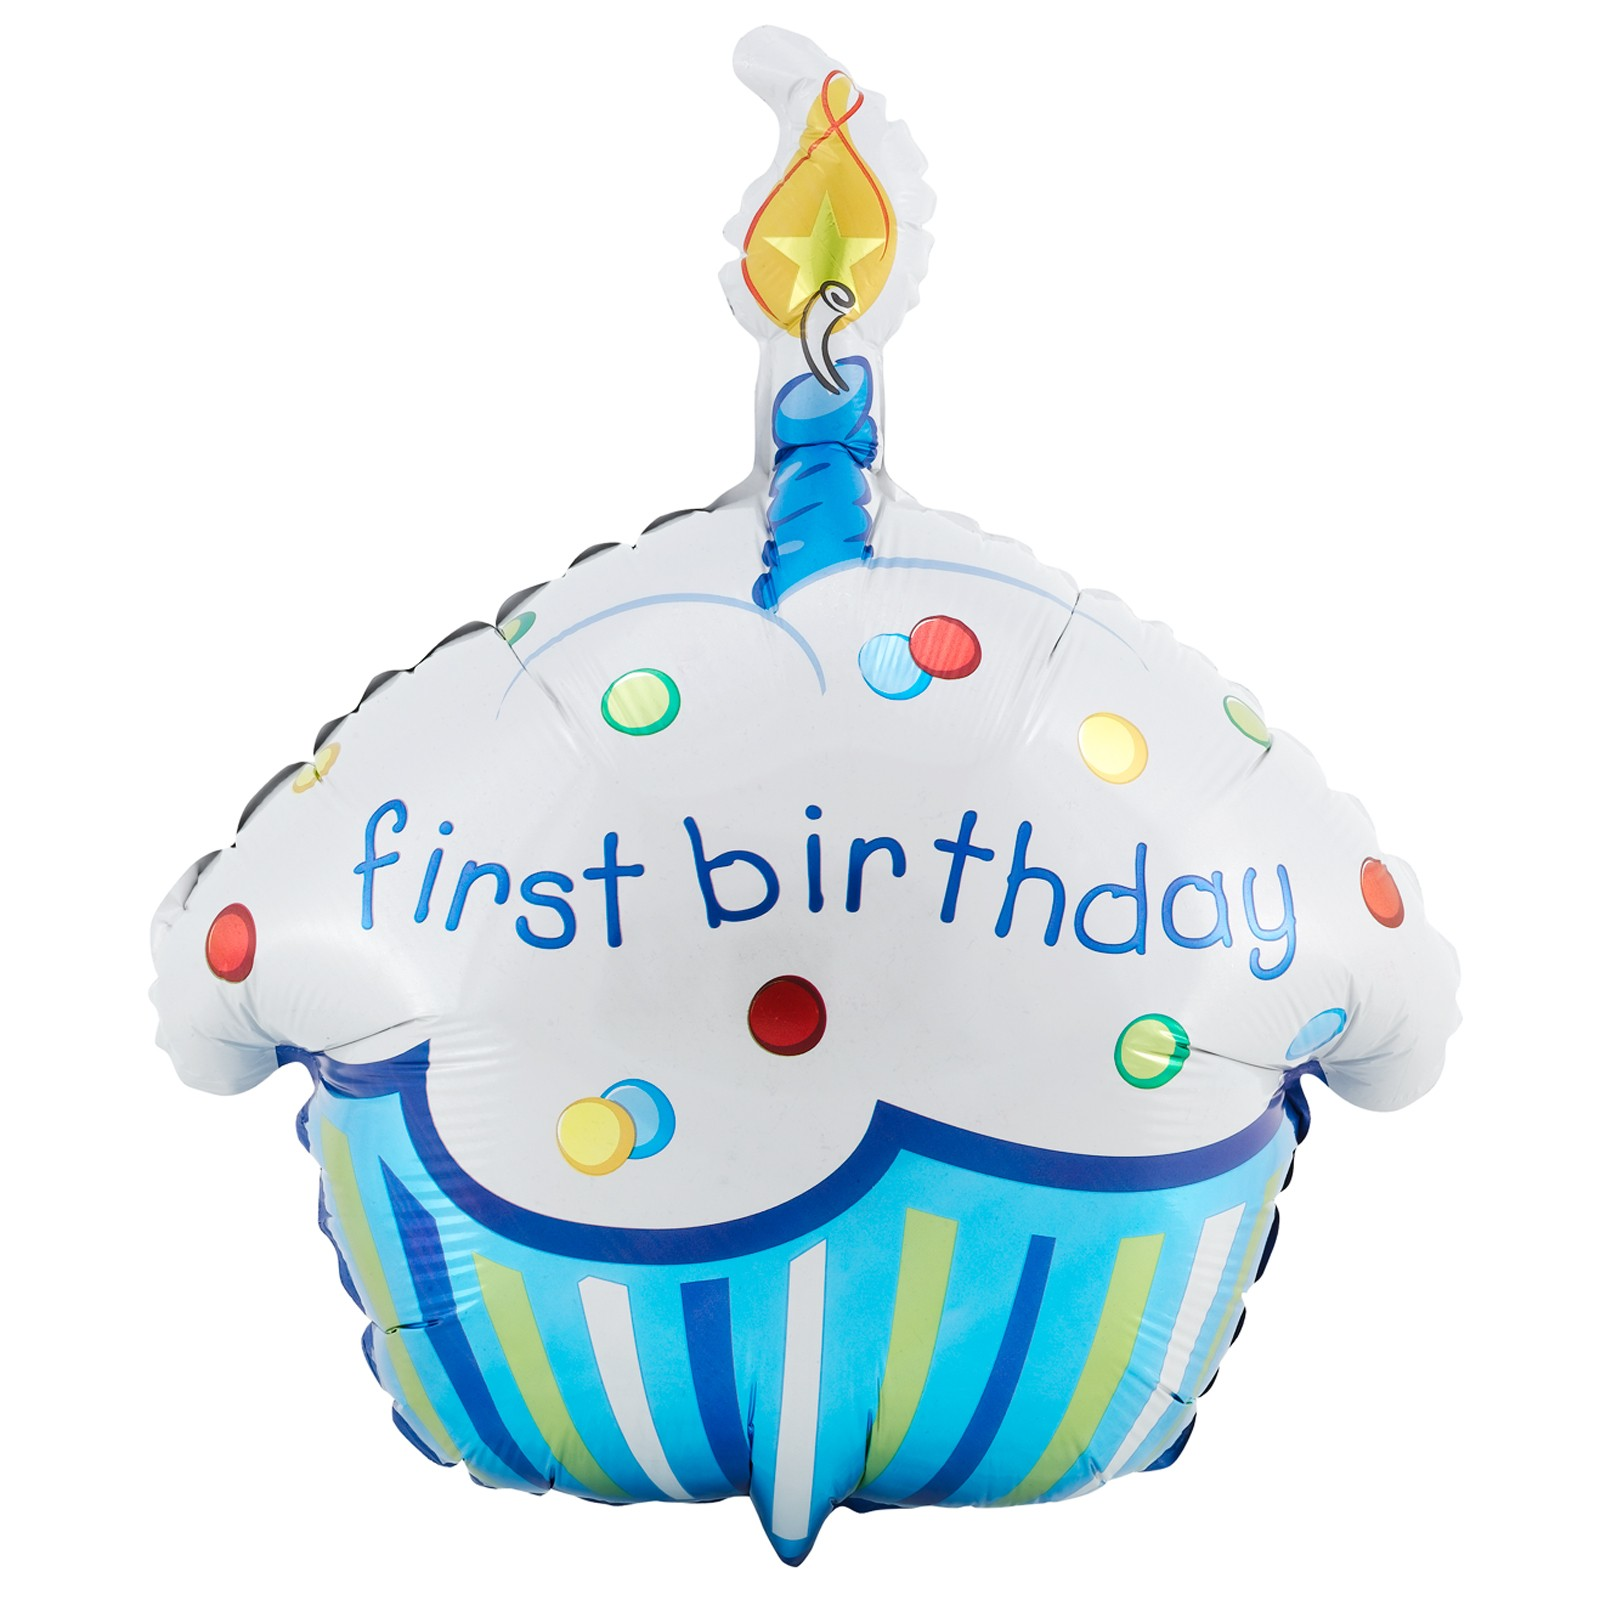 First Birthday One Year Of Blogging « Crafting The Word Of God